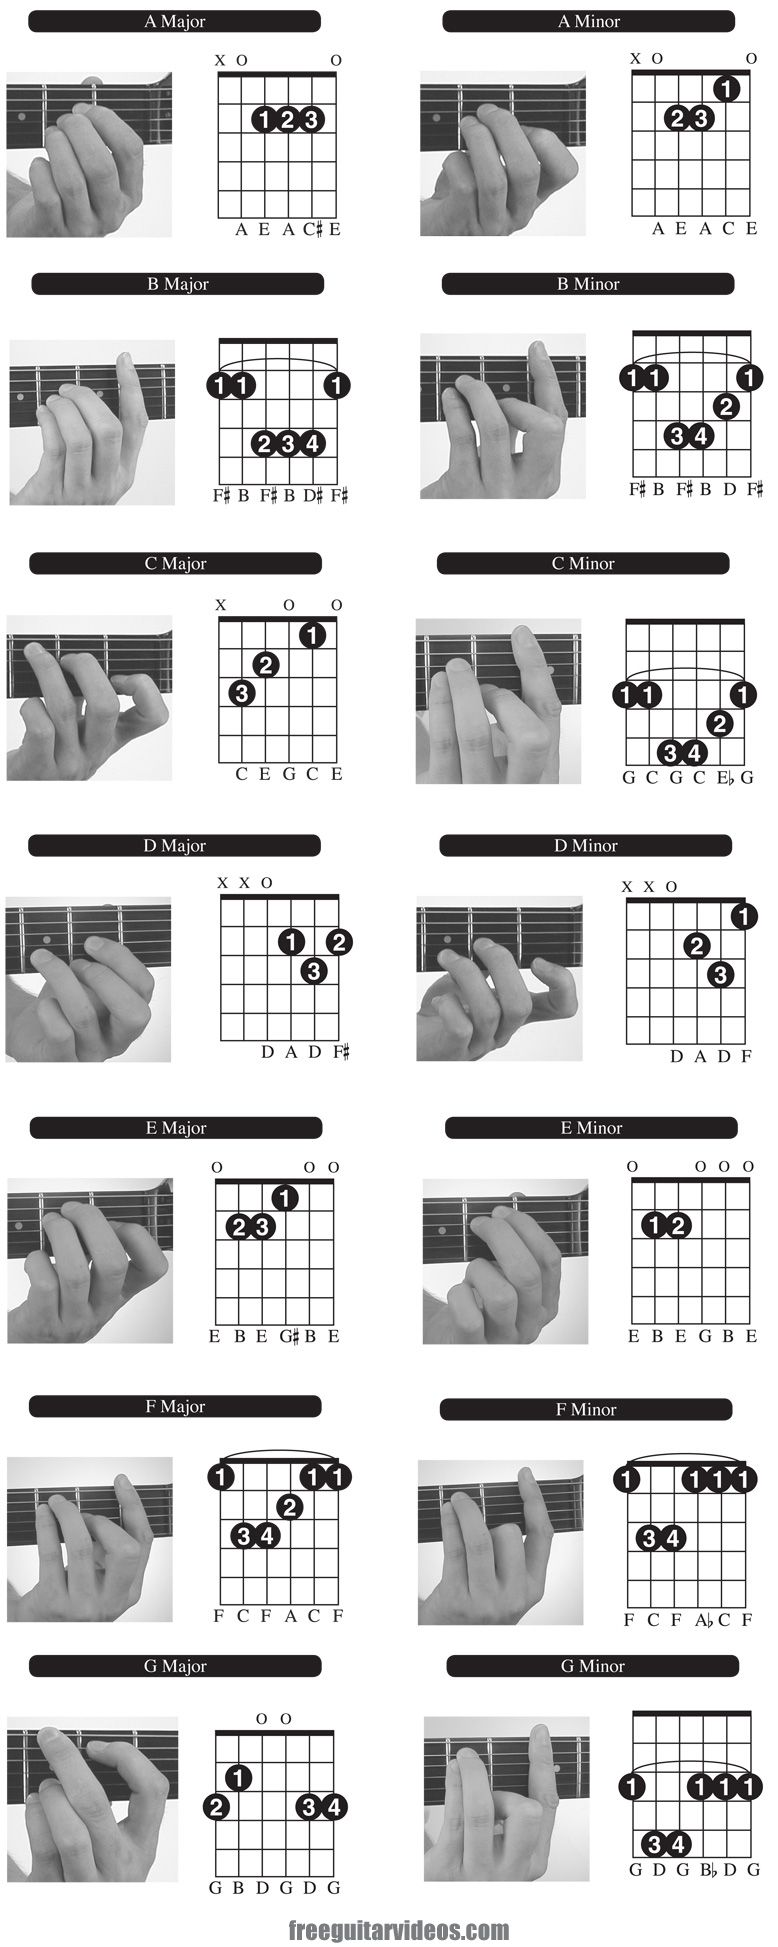 How to Read Guitar Tablature - ThoughtCo